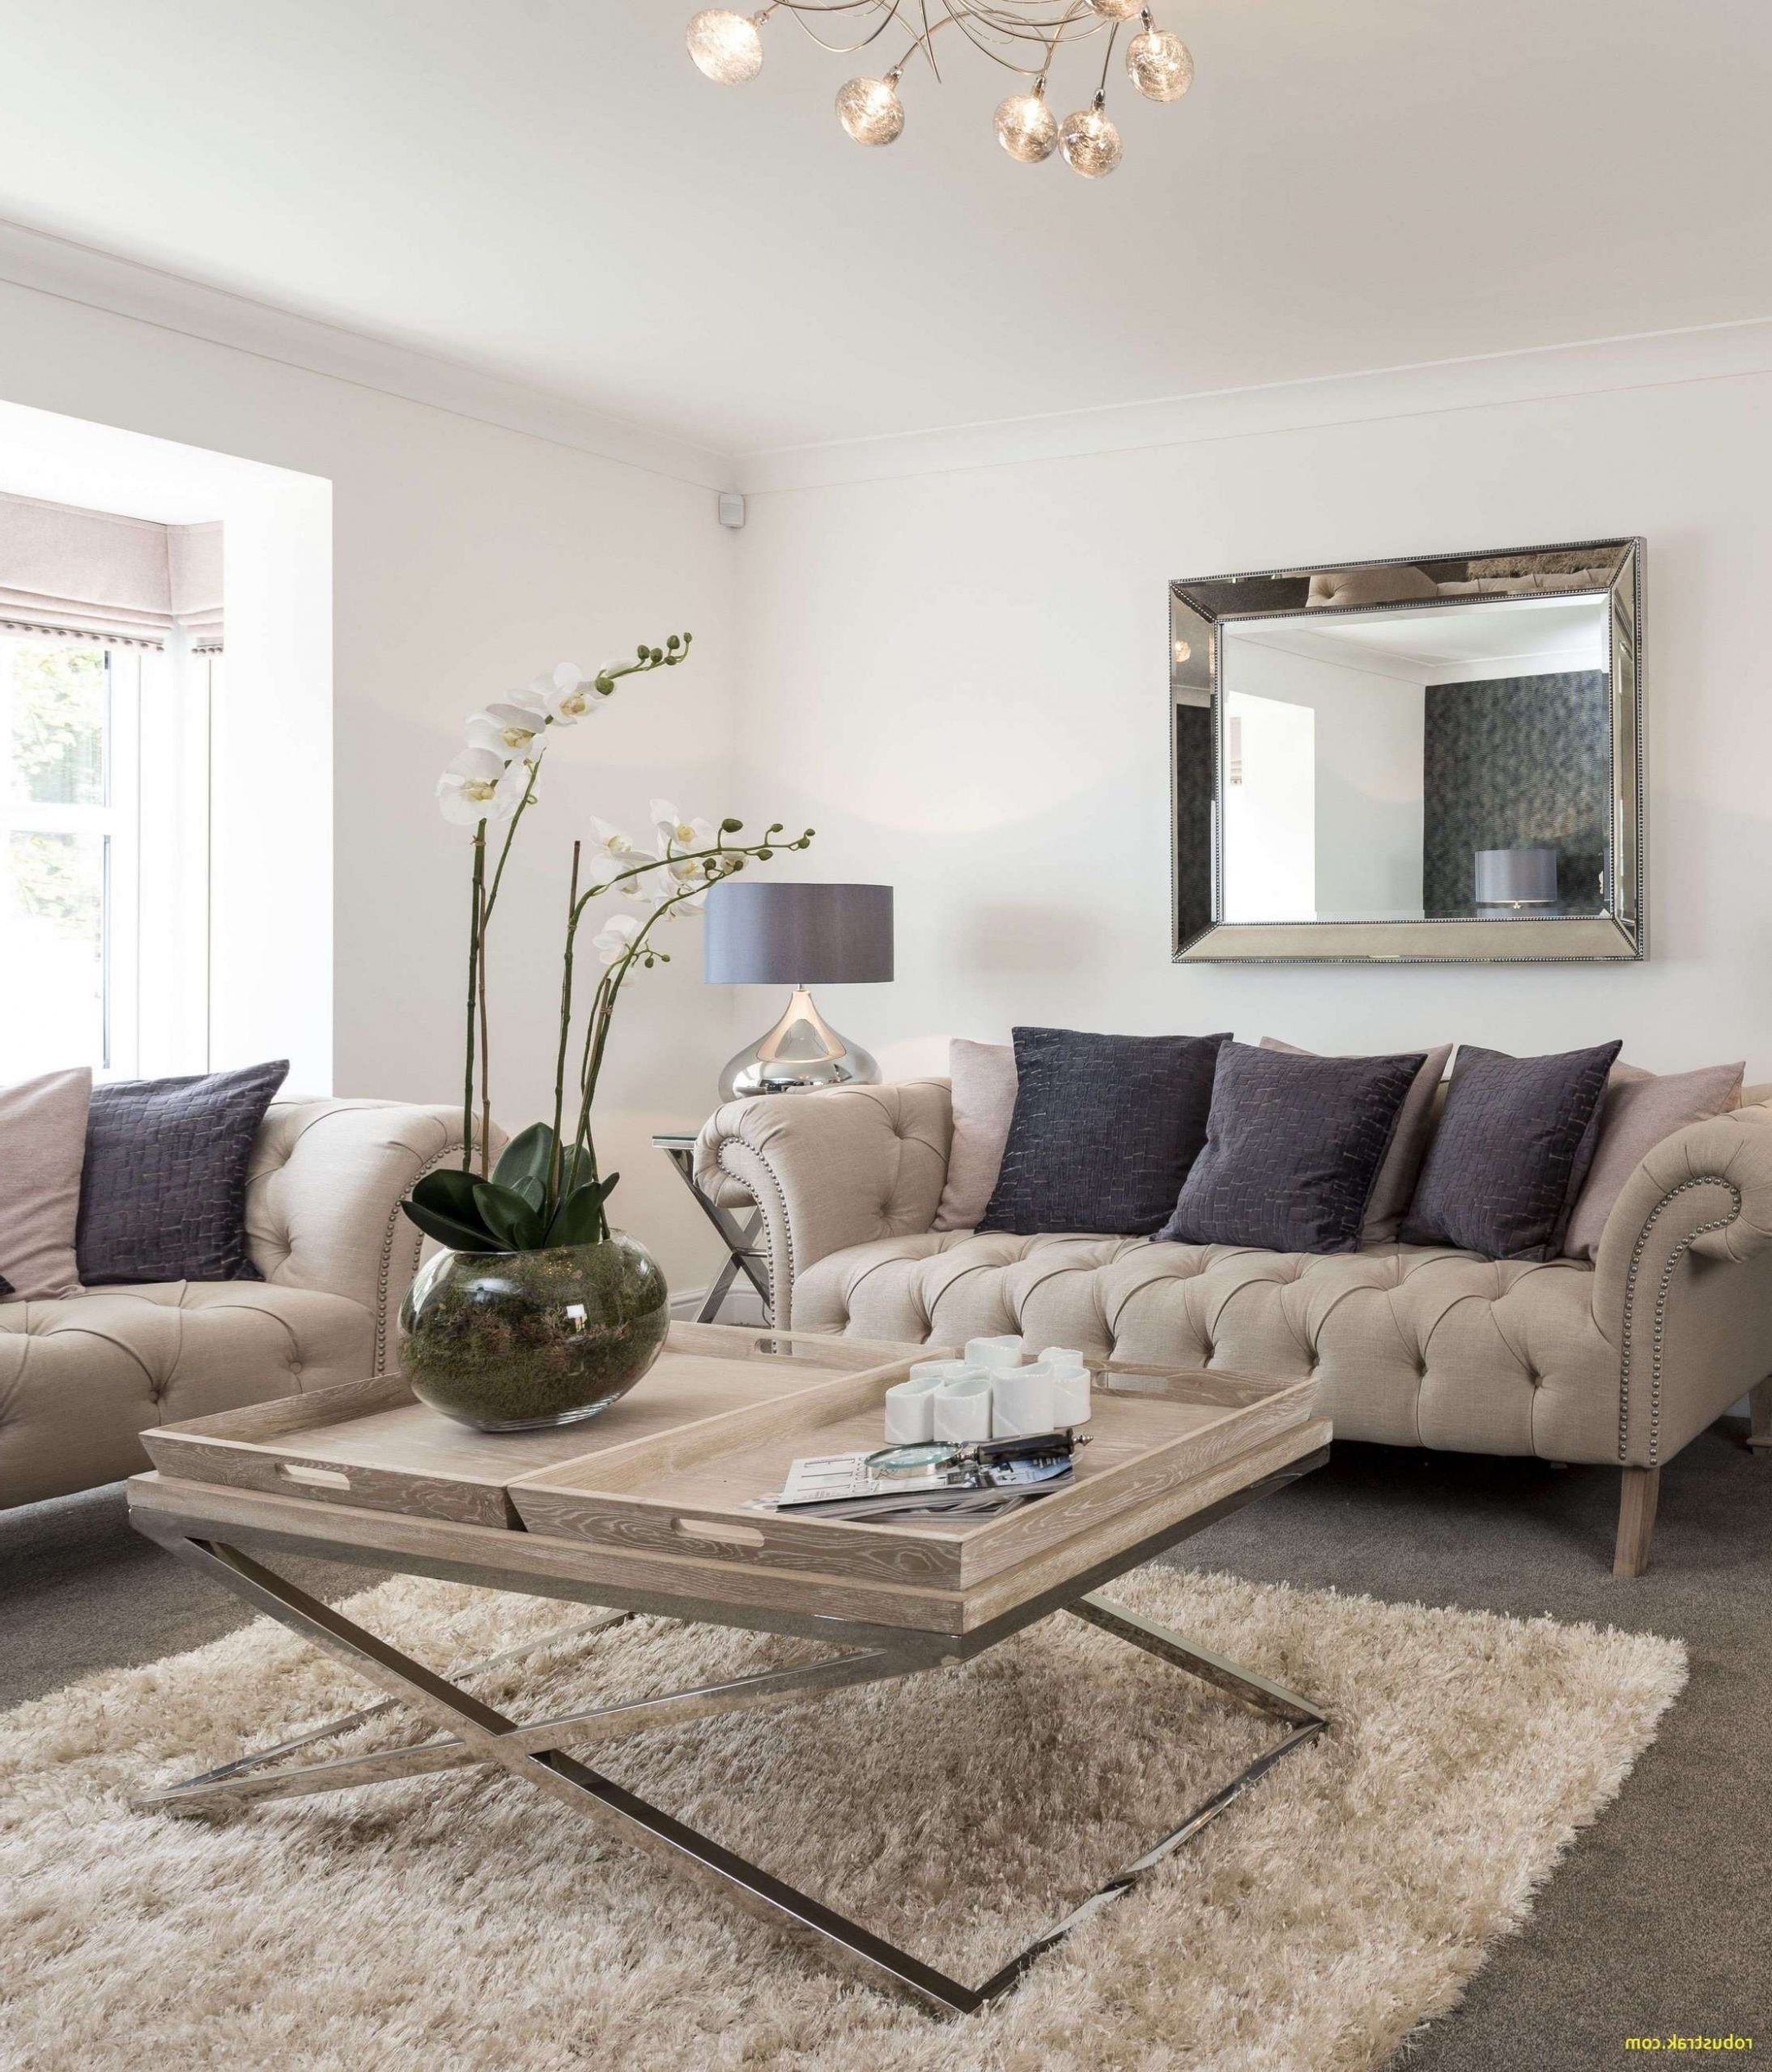 8+ Exceptional Mink Color Walls And Furniture Gallery 20+ Mink Coloured Living Room Inspirations